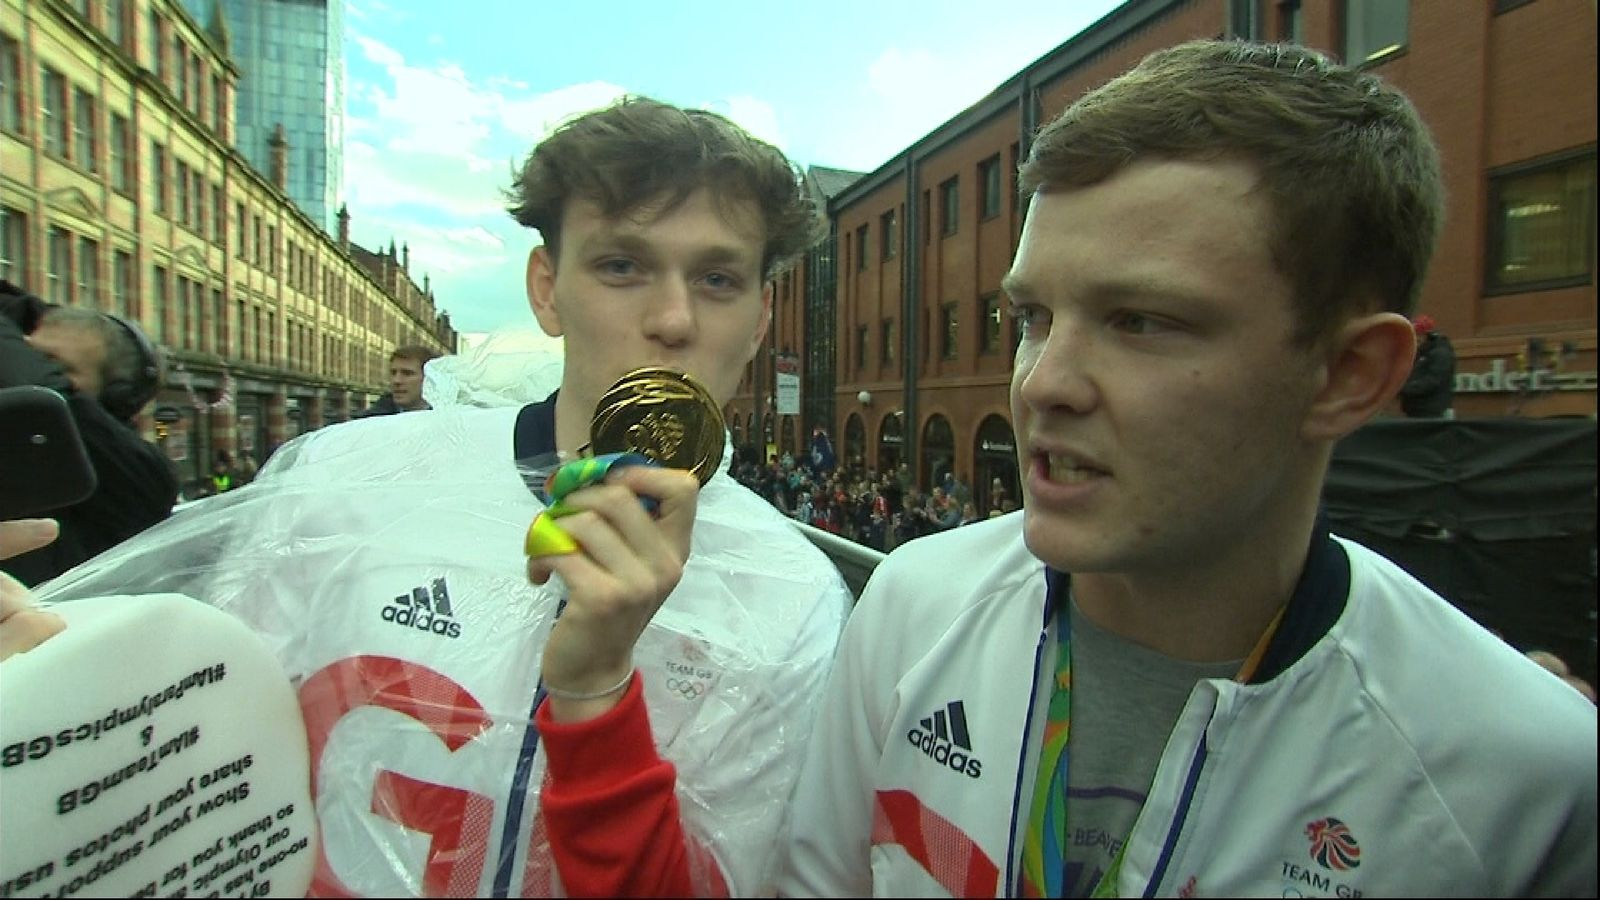 Two blaggers get on board the Team GB Olympic celebration bus